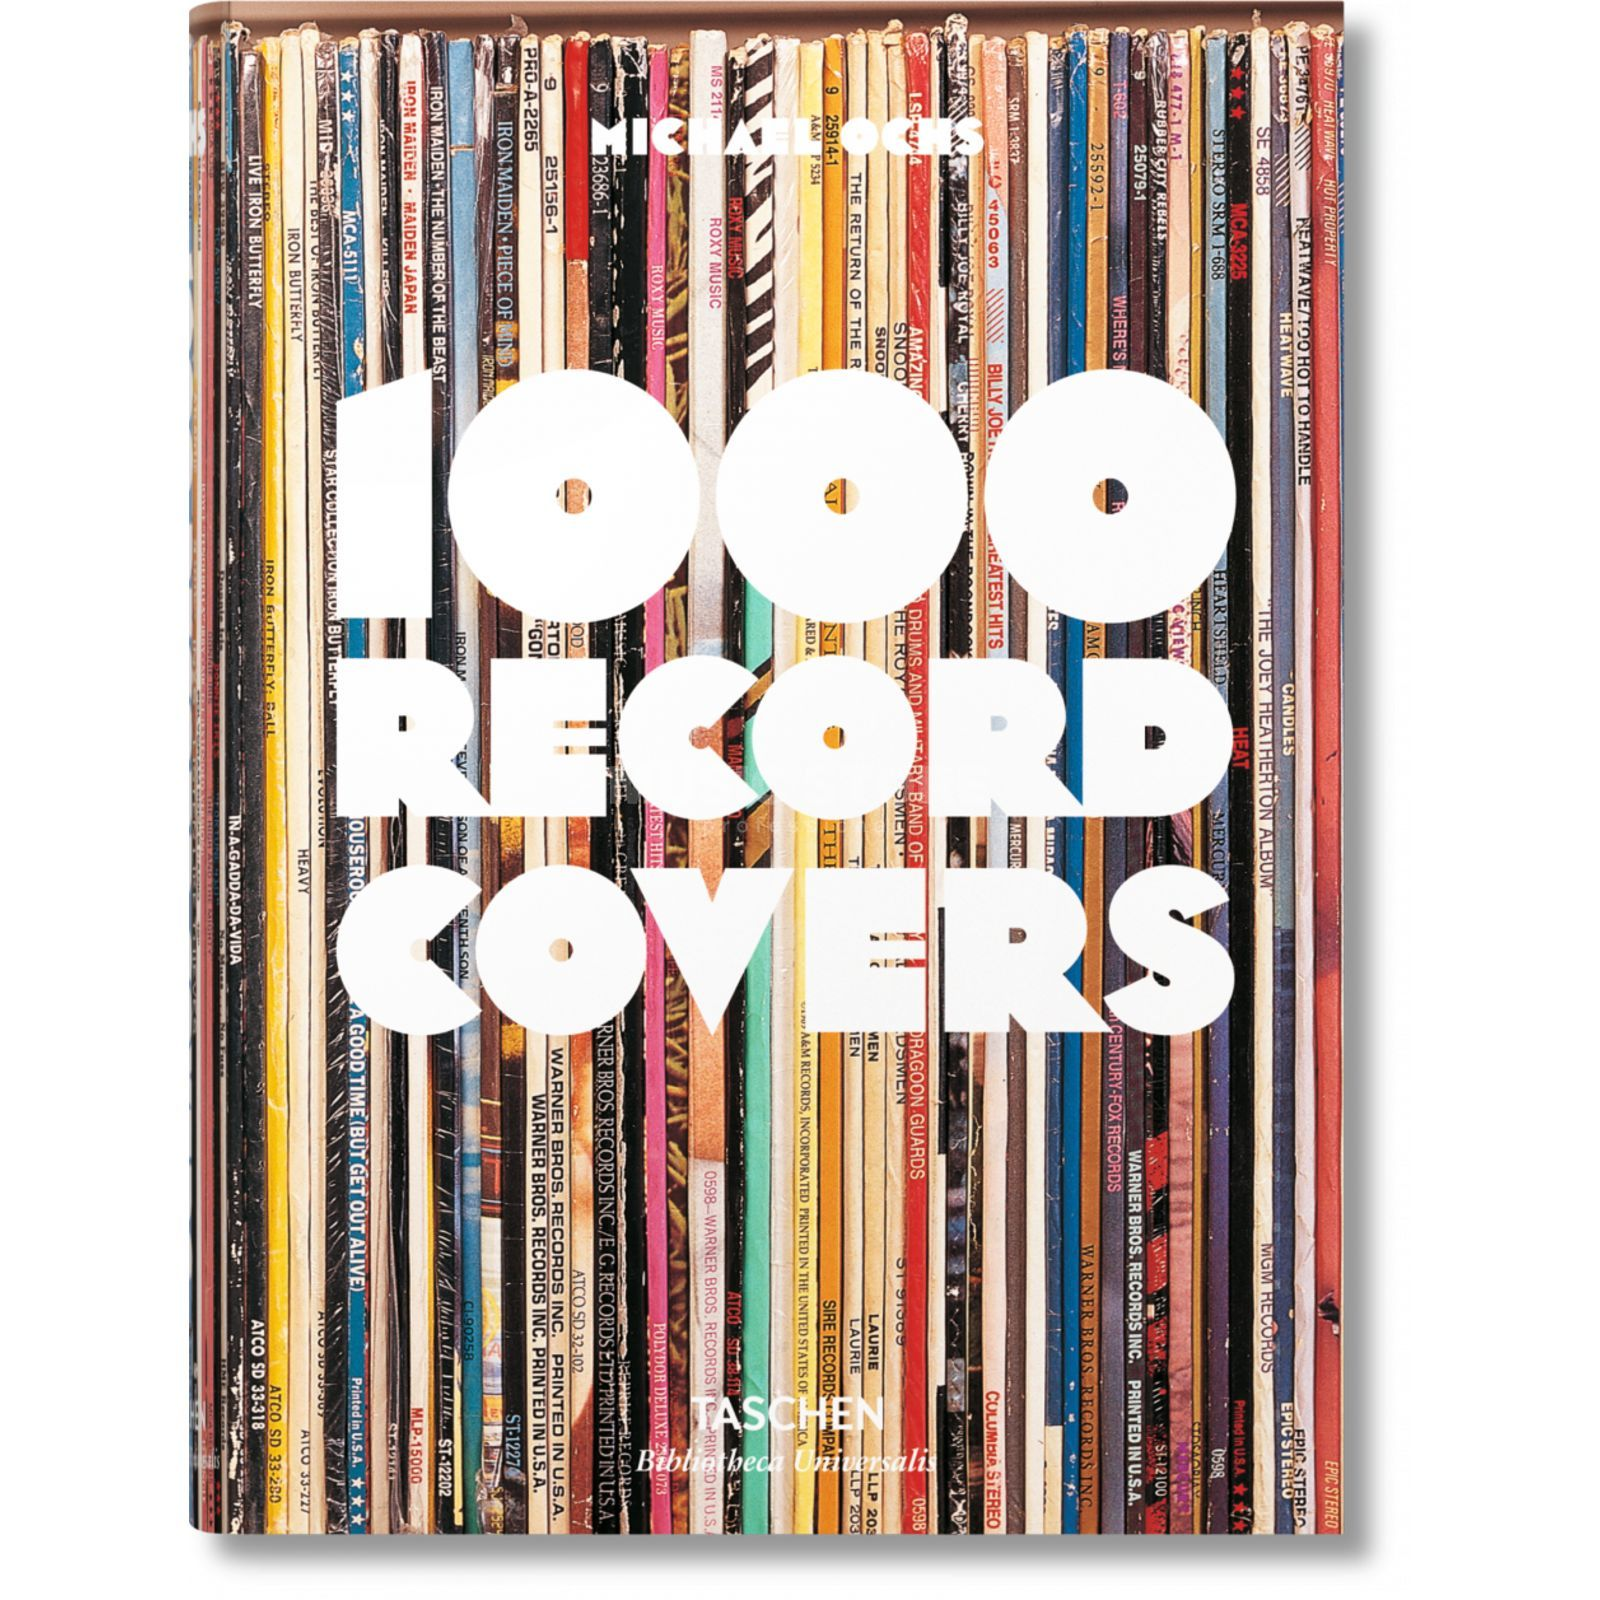 Taschen-Verlag 1000 Record Covers Michael Ochs Product Image